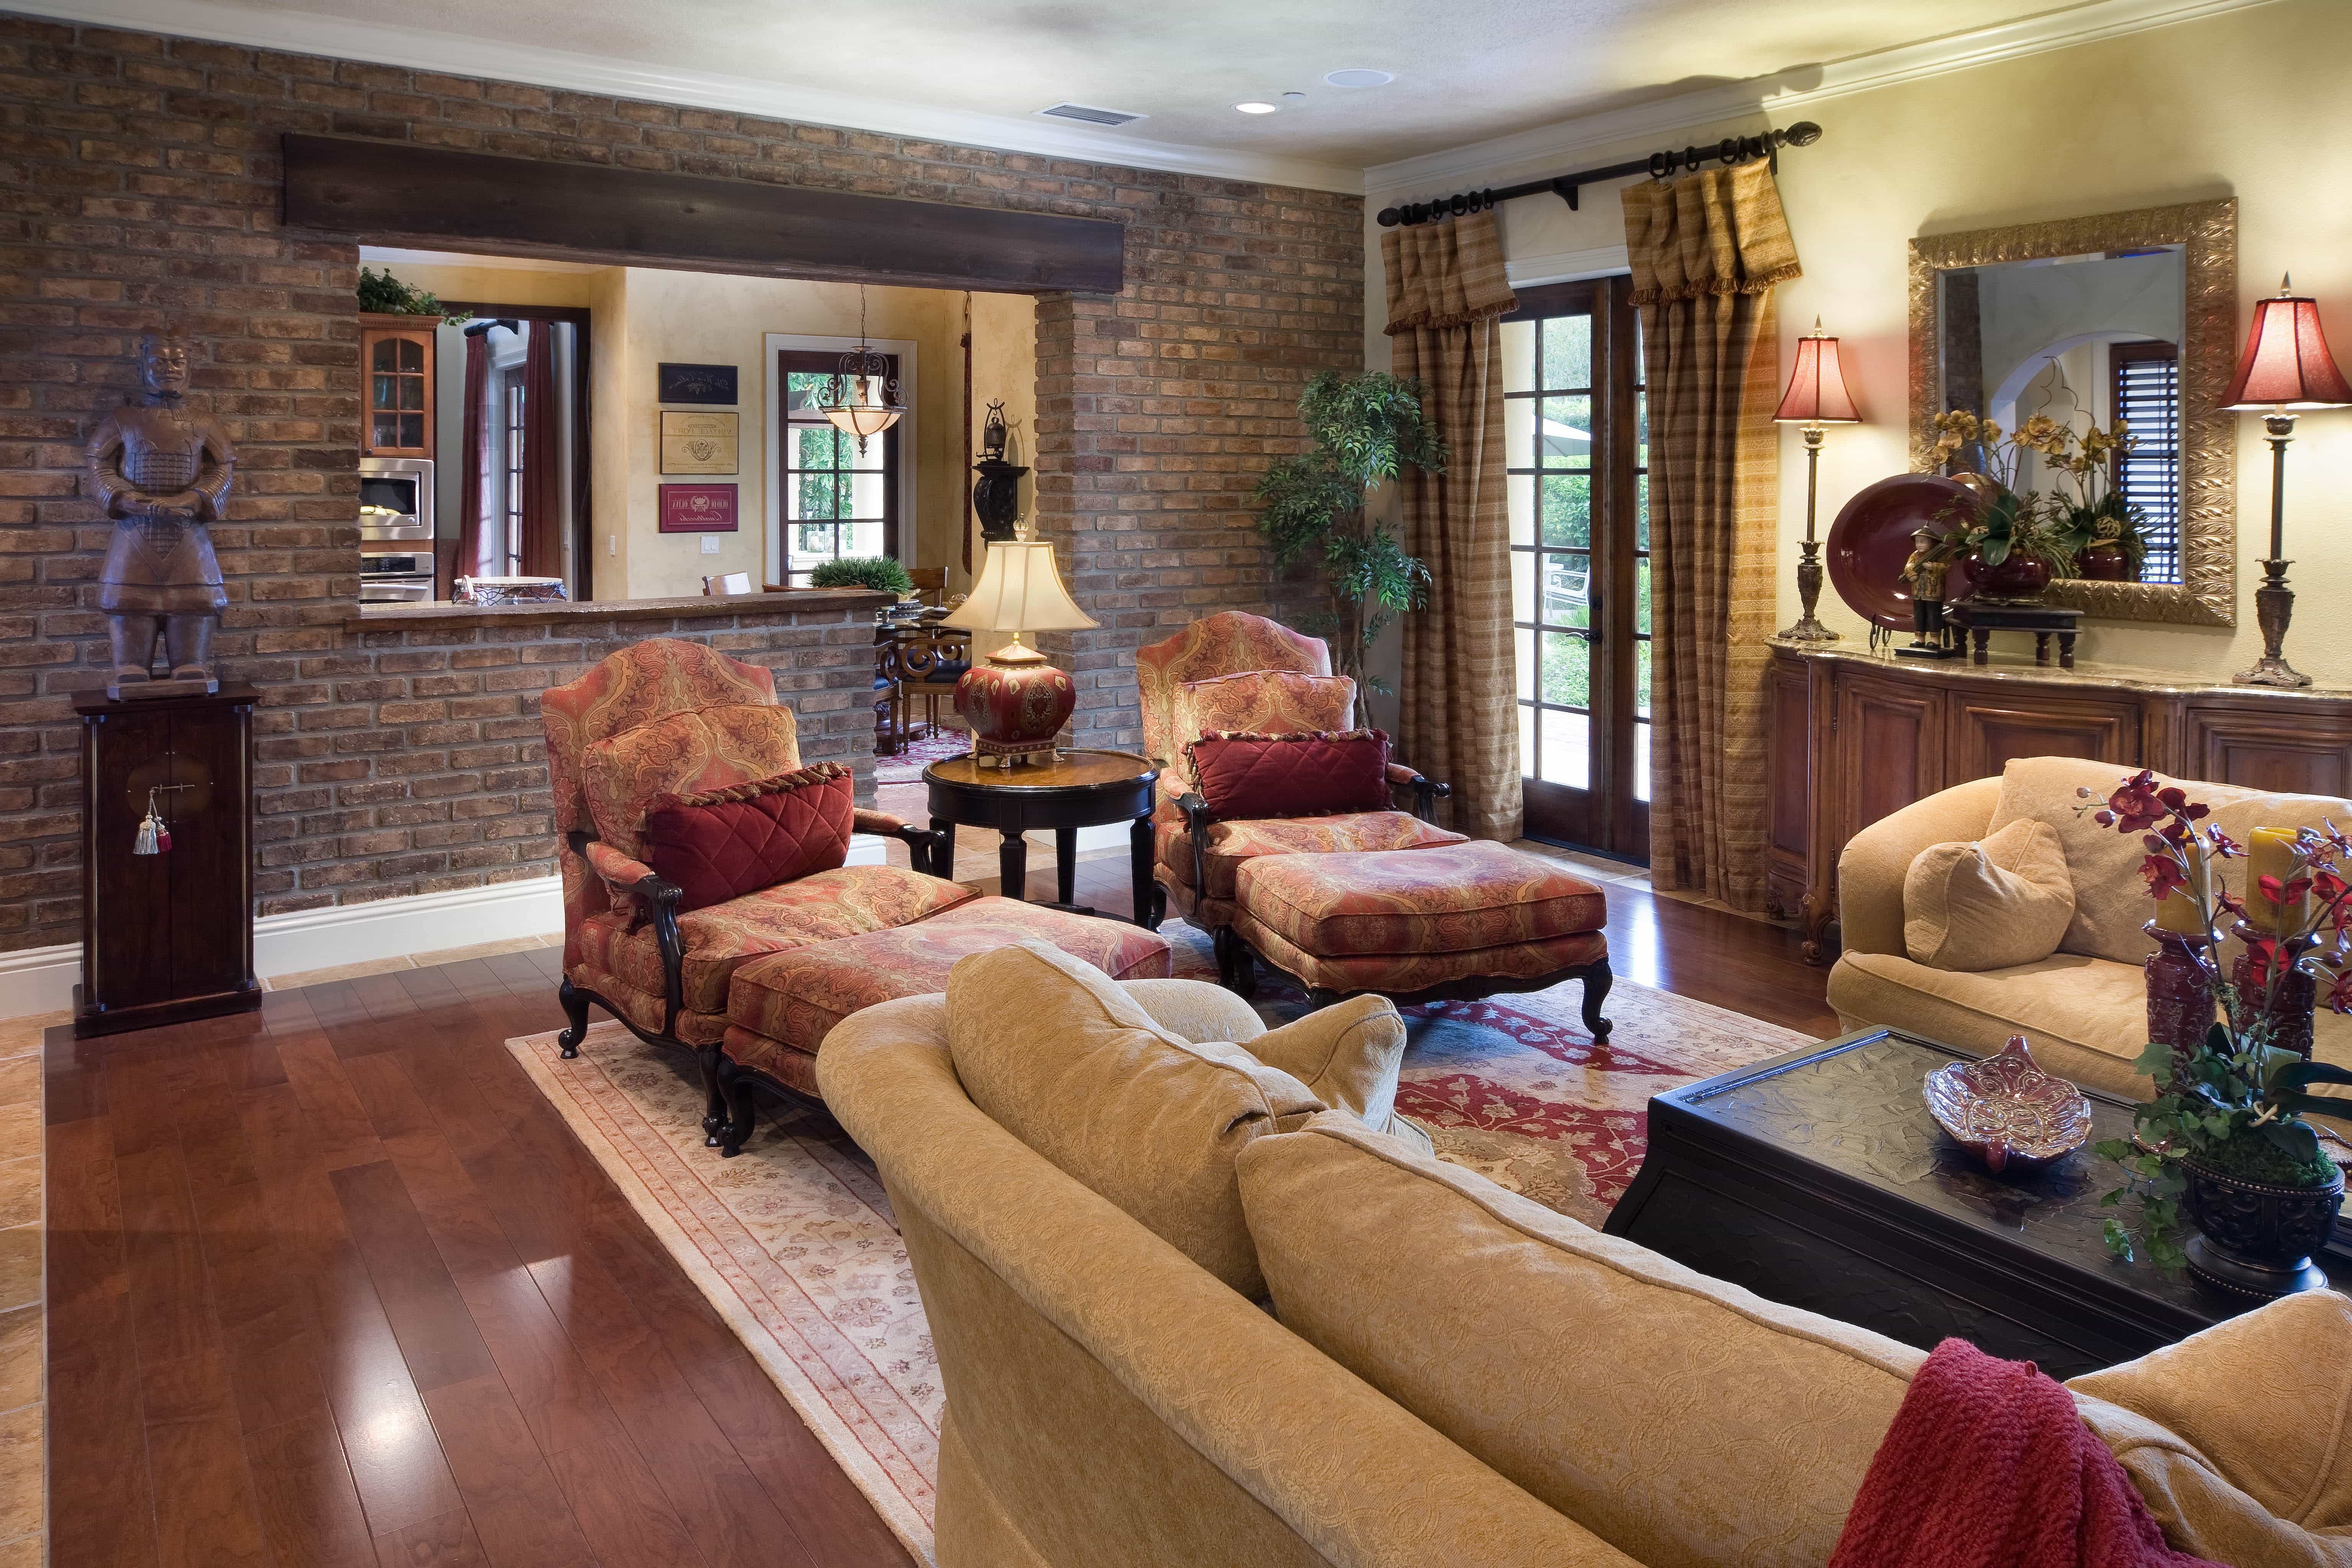 Cozy Tuscan Living Room With Brick Accent Wall (Image 9 of 30)